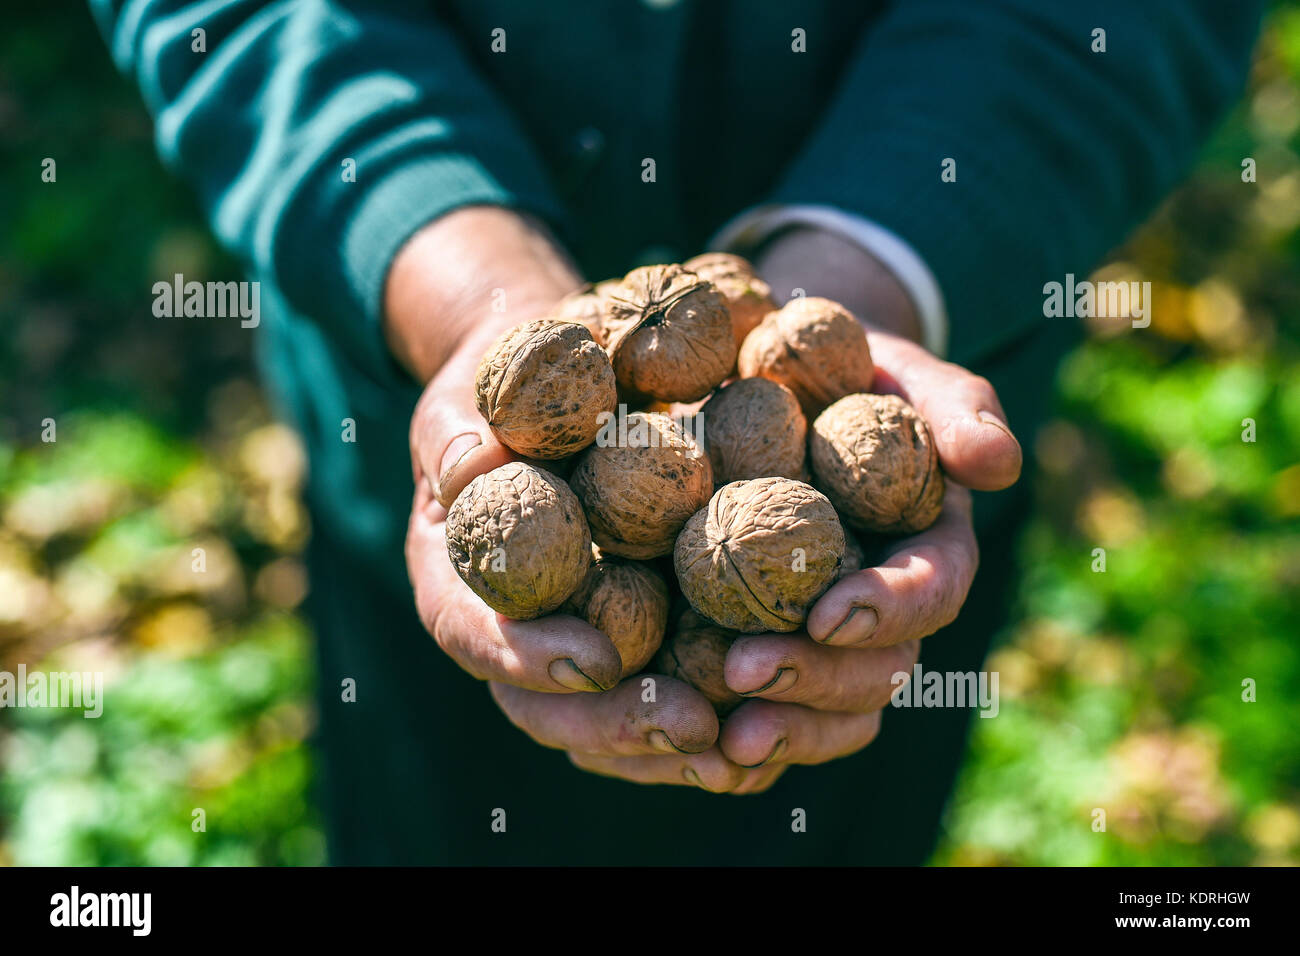 Handful of walnuts in the hands of an old woman, concept, Ukraine - Stock Image